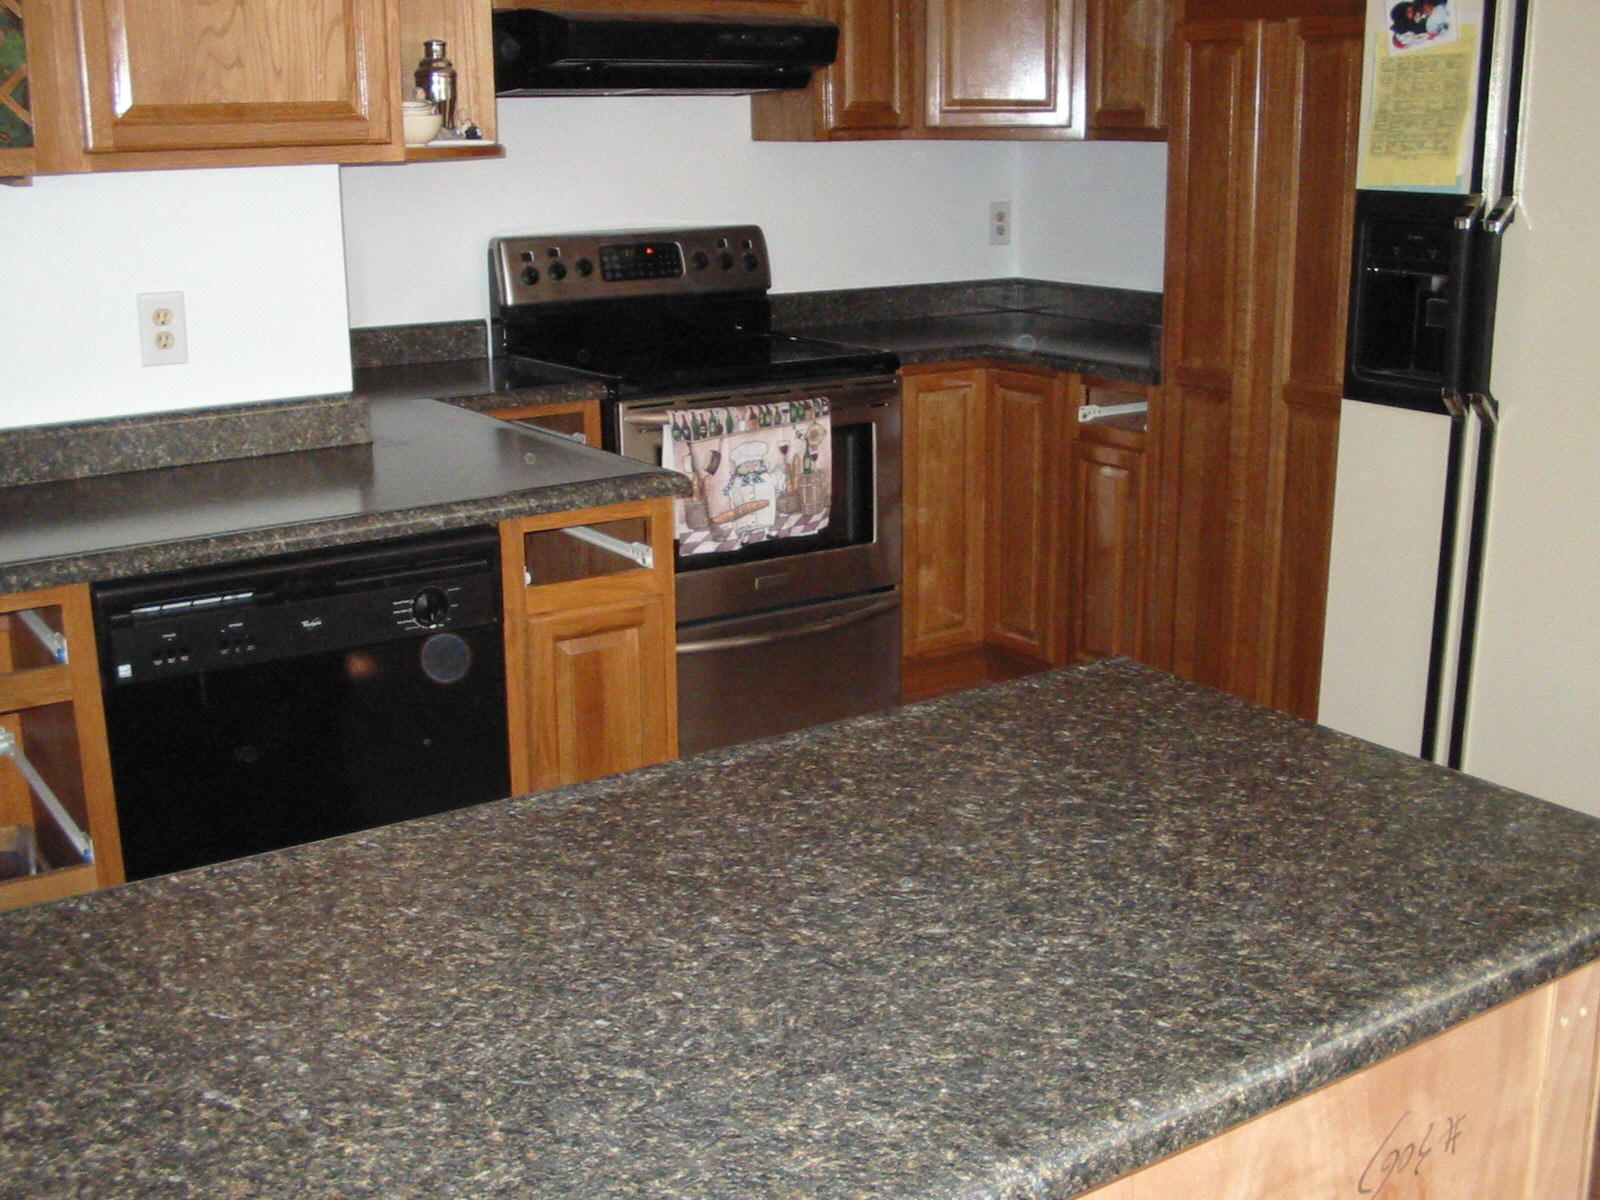 laminate counter tops. formica countertops after. laminate